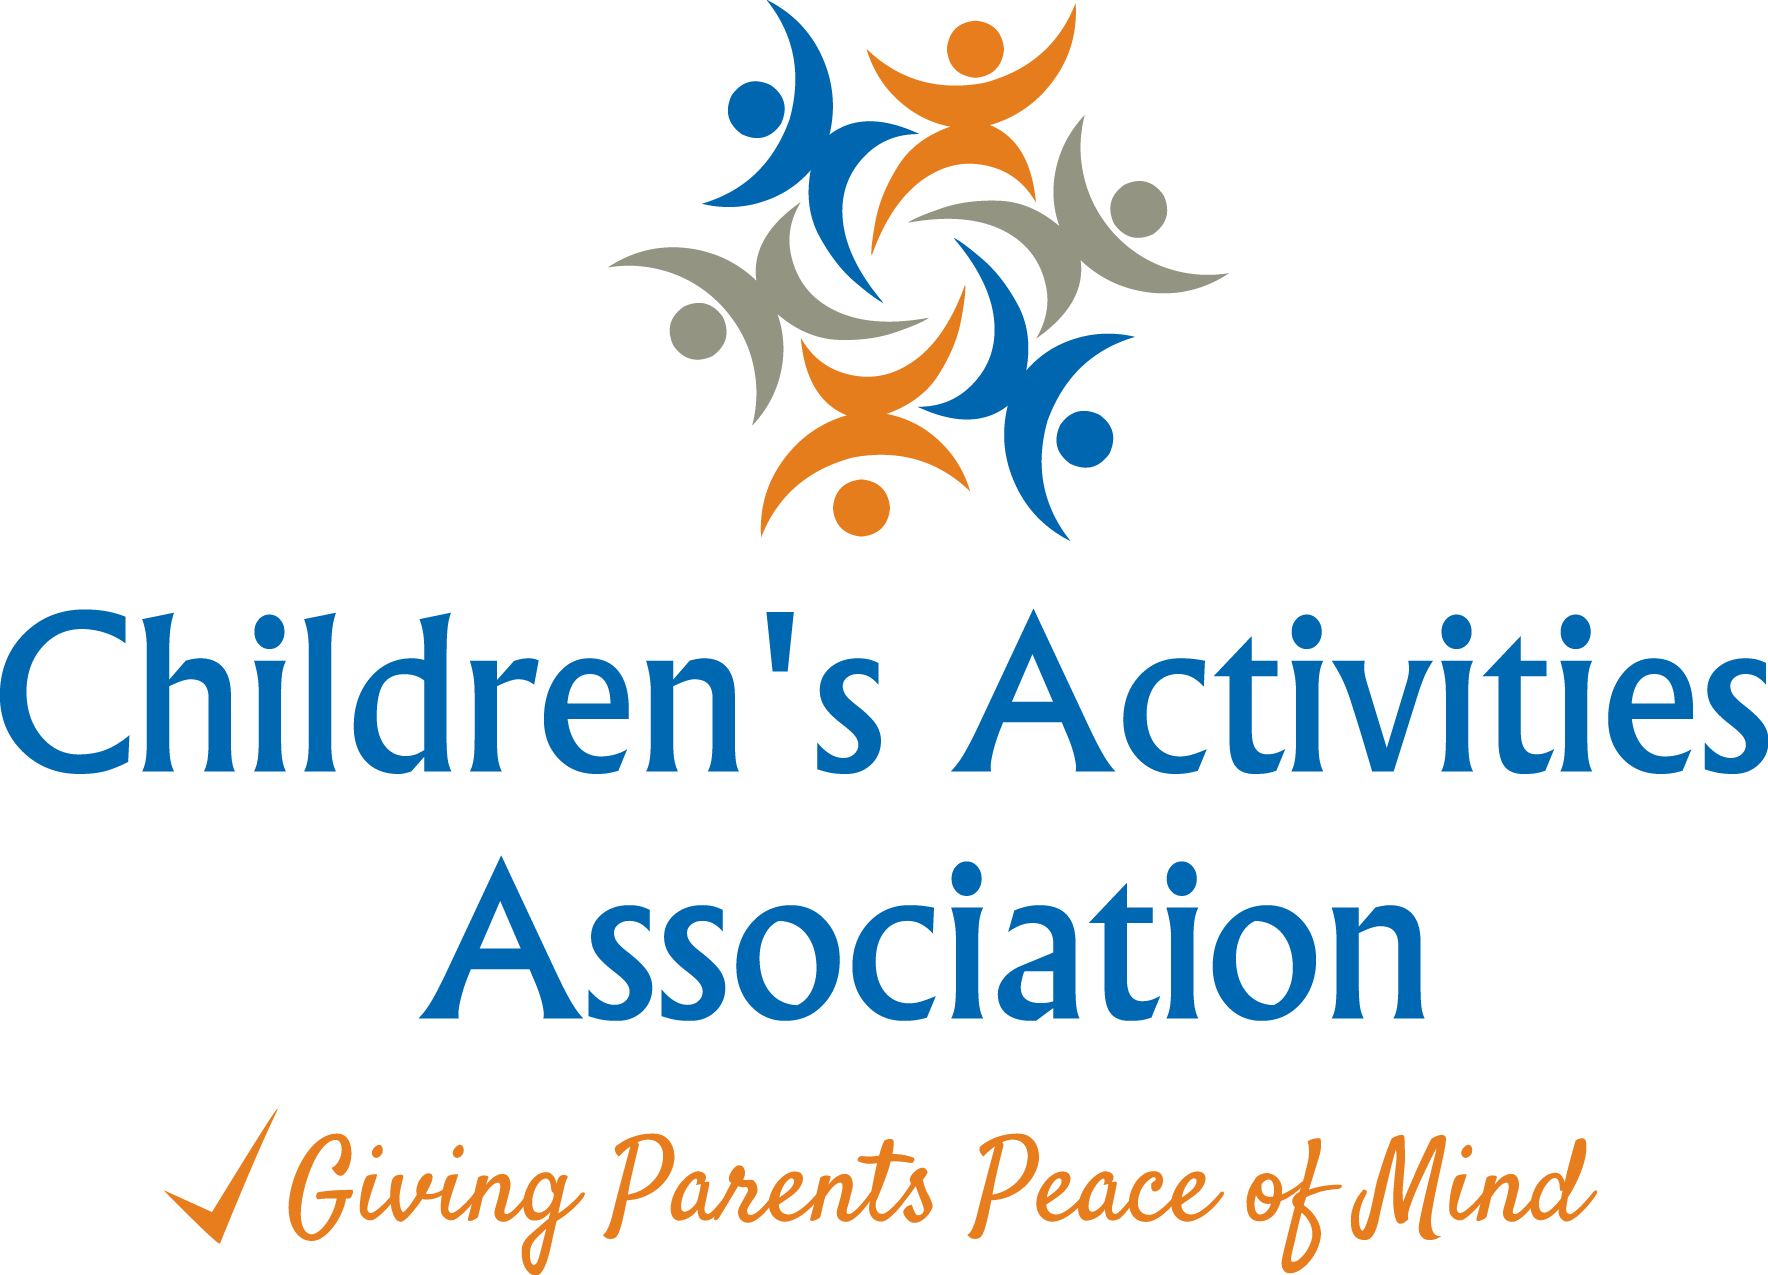 Children's Activities Association